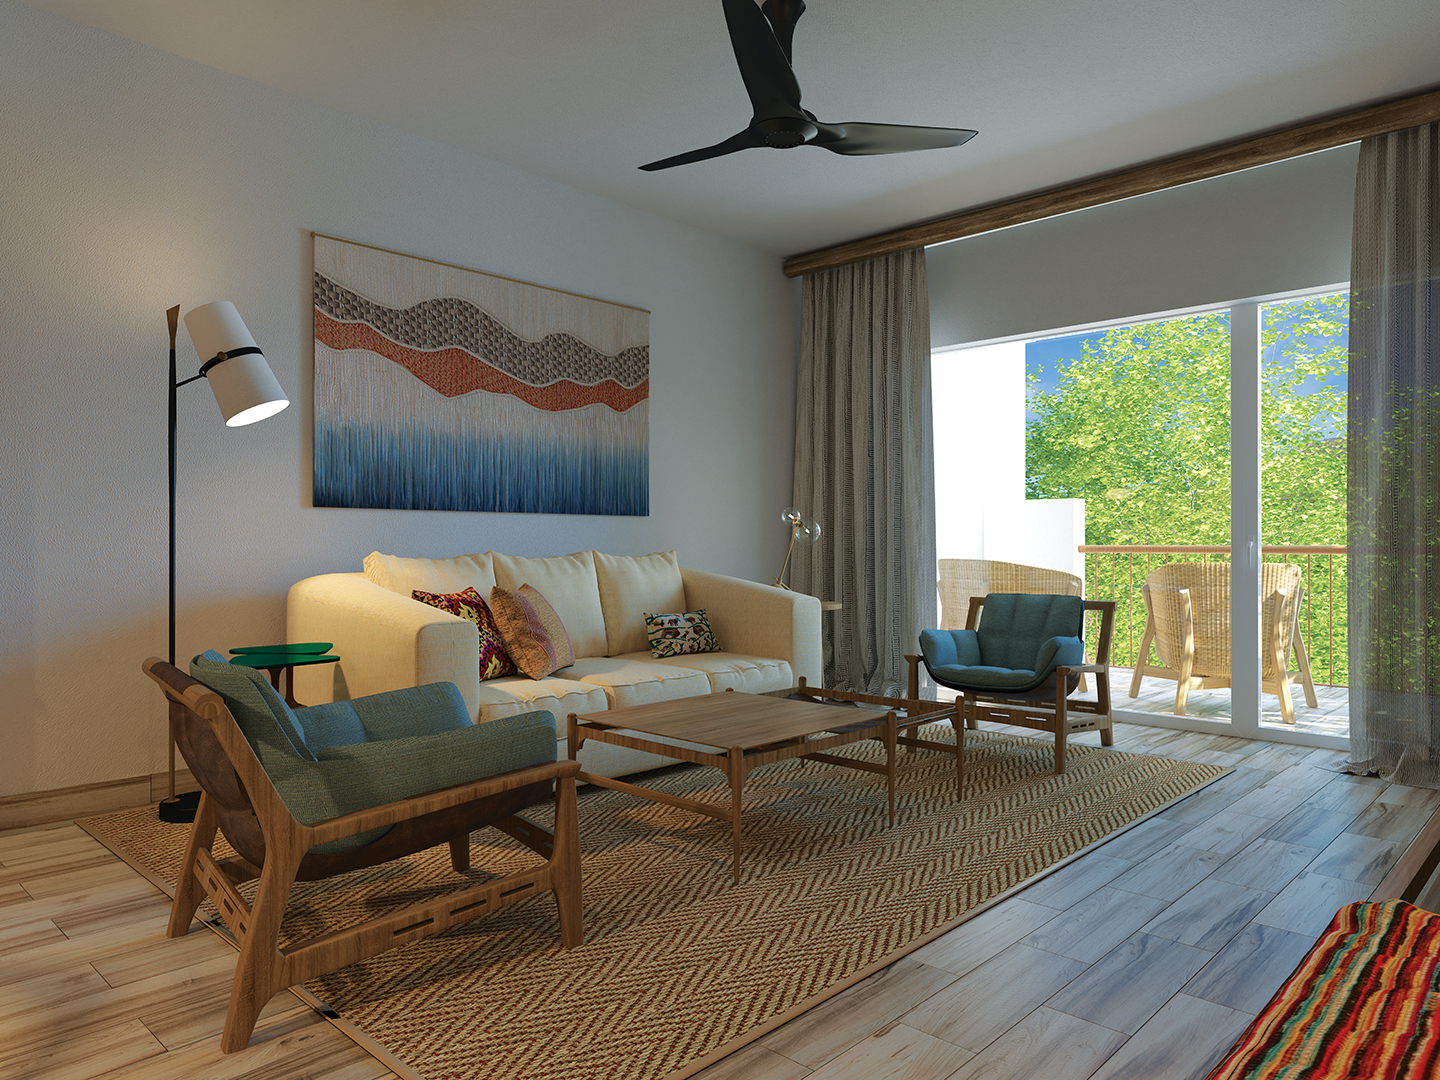 Image of the Living Room